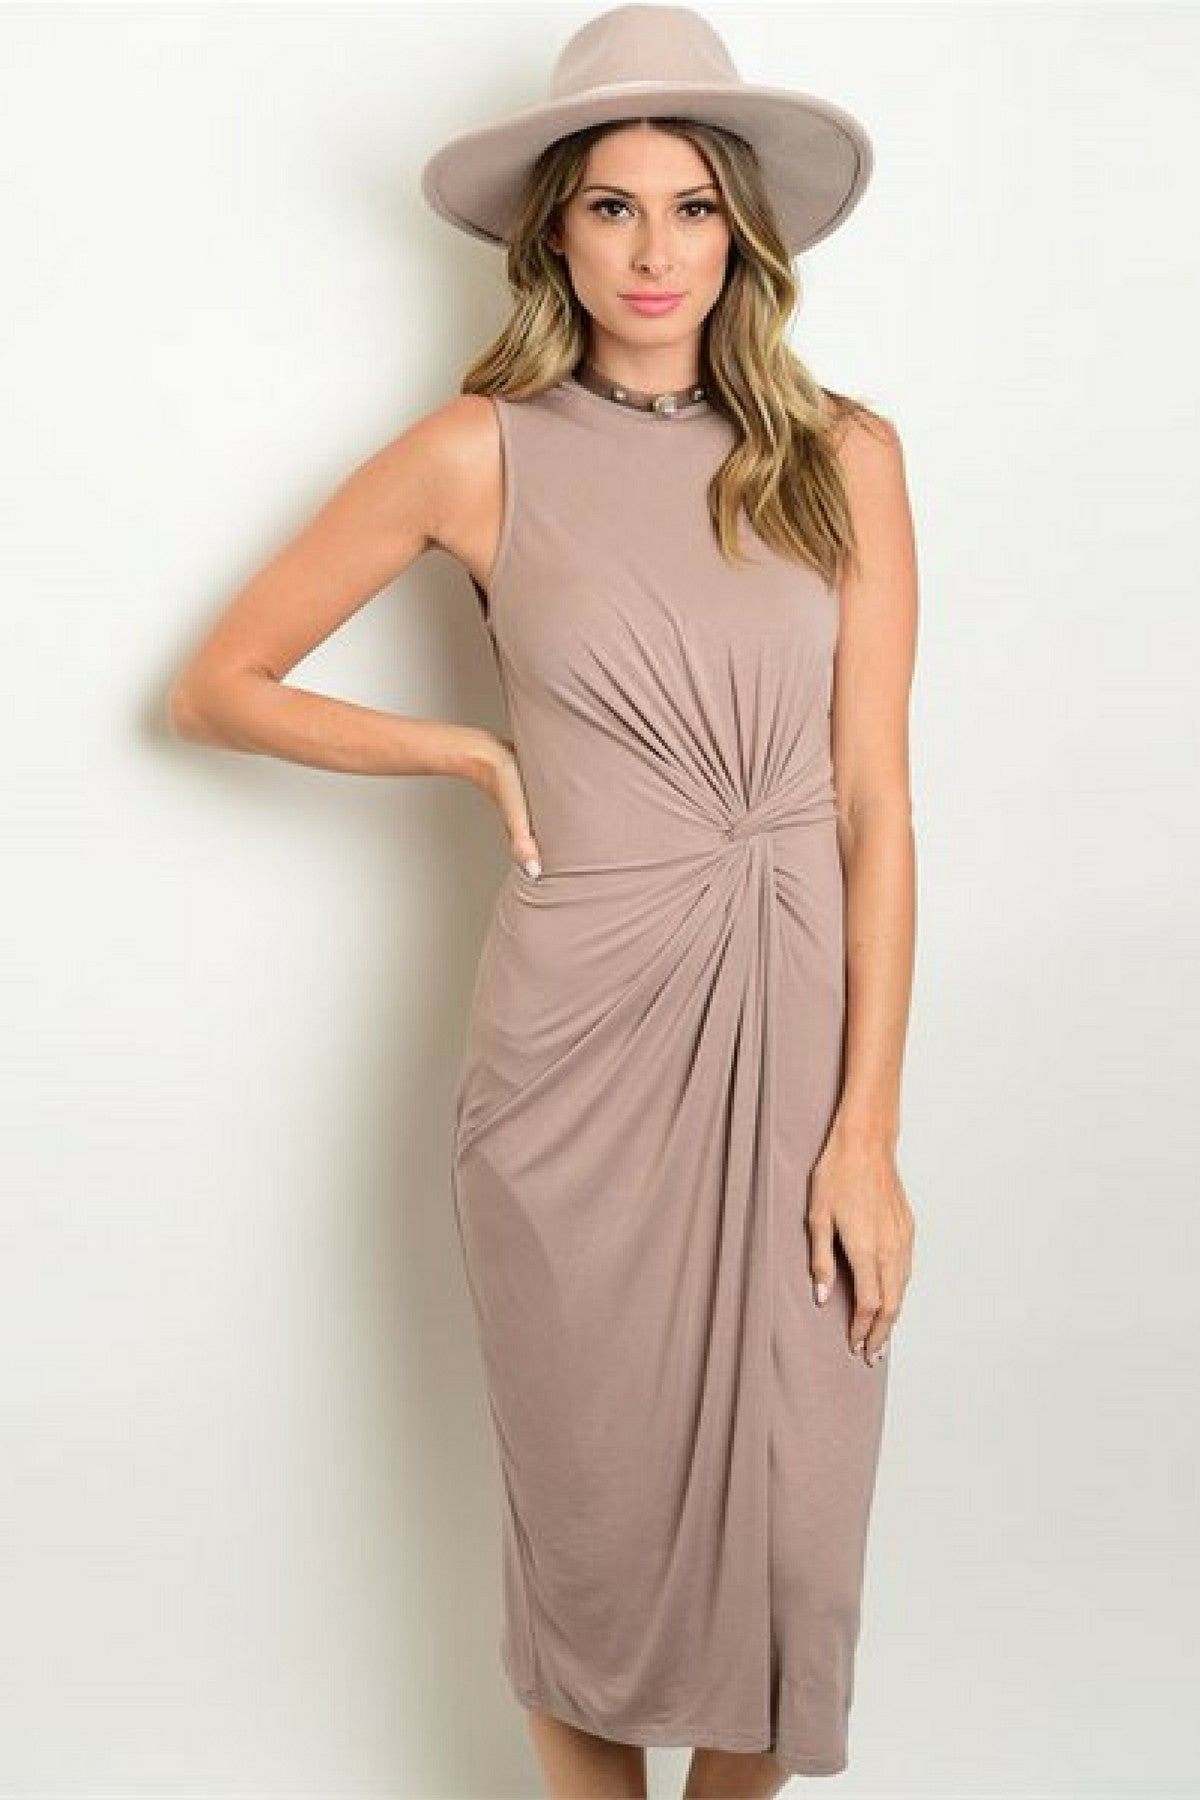 Tie the Knot Nude Midi Dress - Leather and Sequins - 1